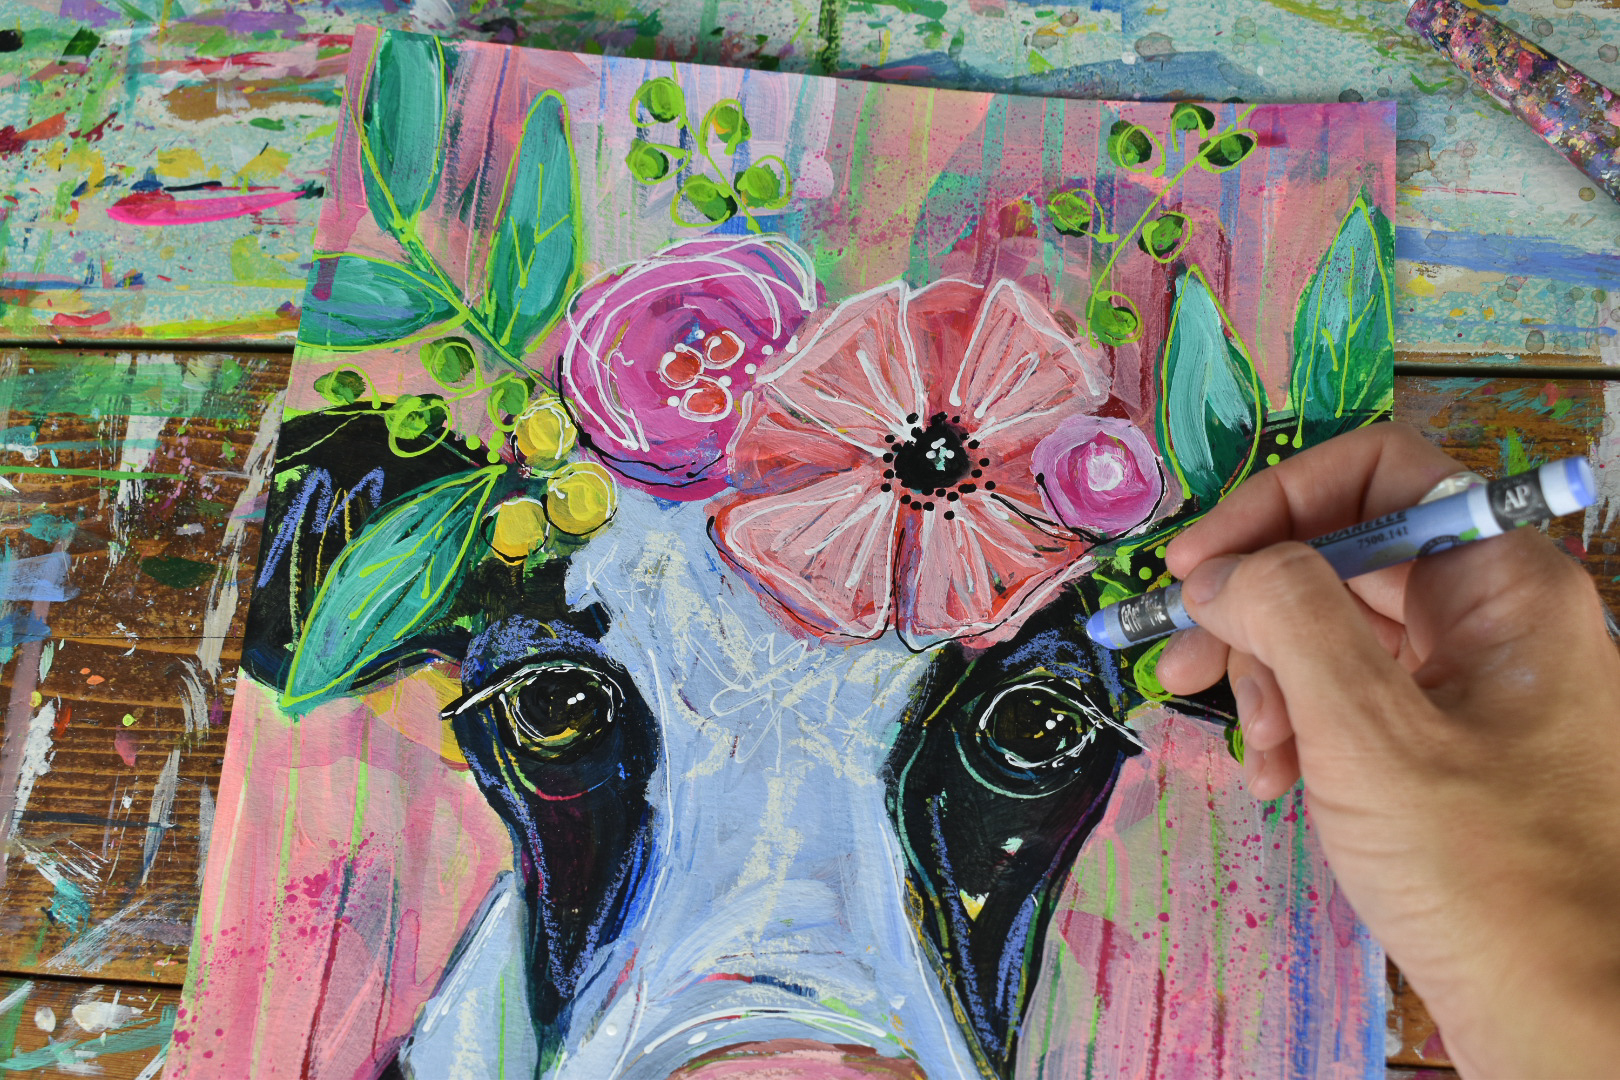 boho_cow_painting_colorfulart_farmanimal_flowercrown_5.jpg